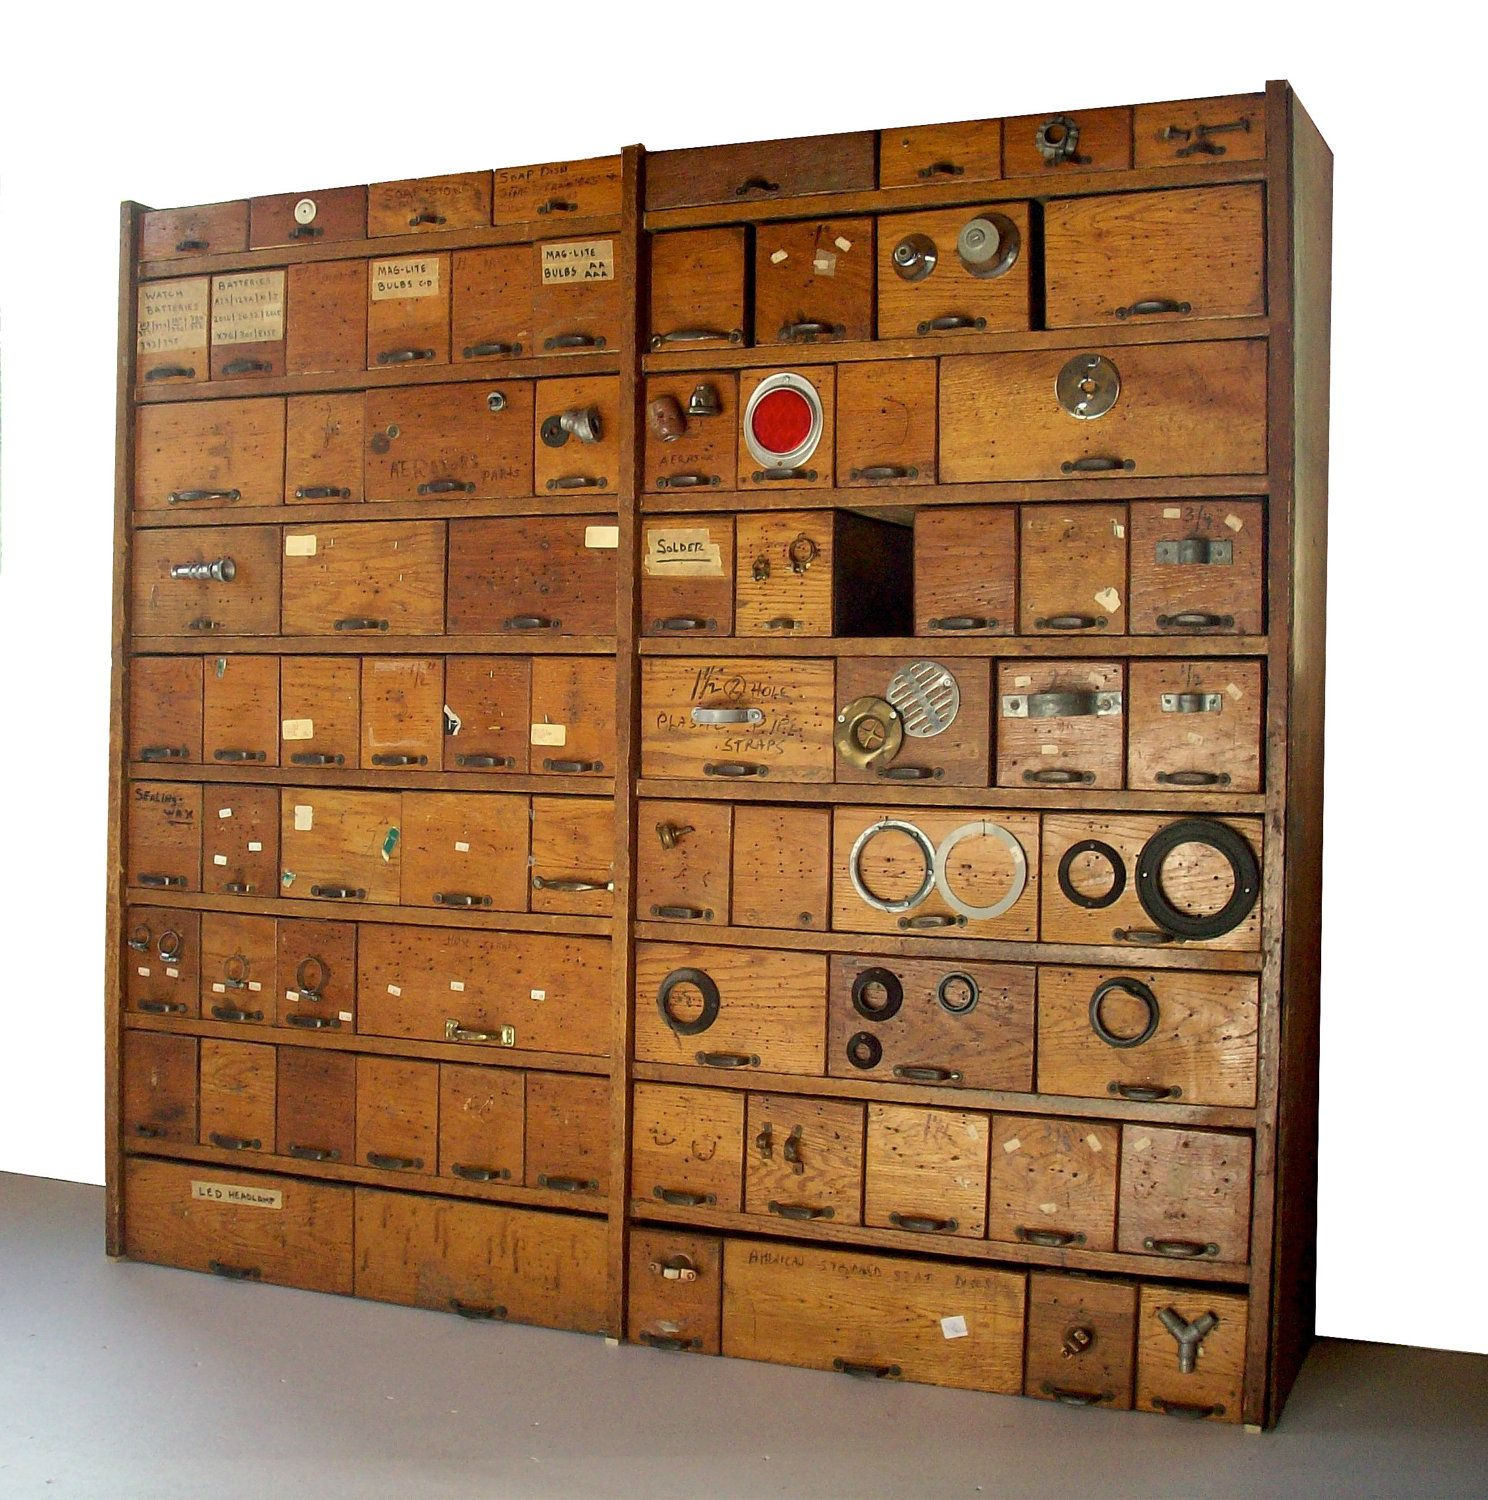 Vintage Hardware Store Bins And Shelving Cabinet Oak Hardware Store Vintage Hardware Vintage Storage